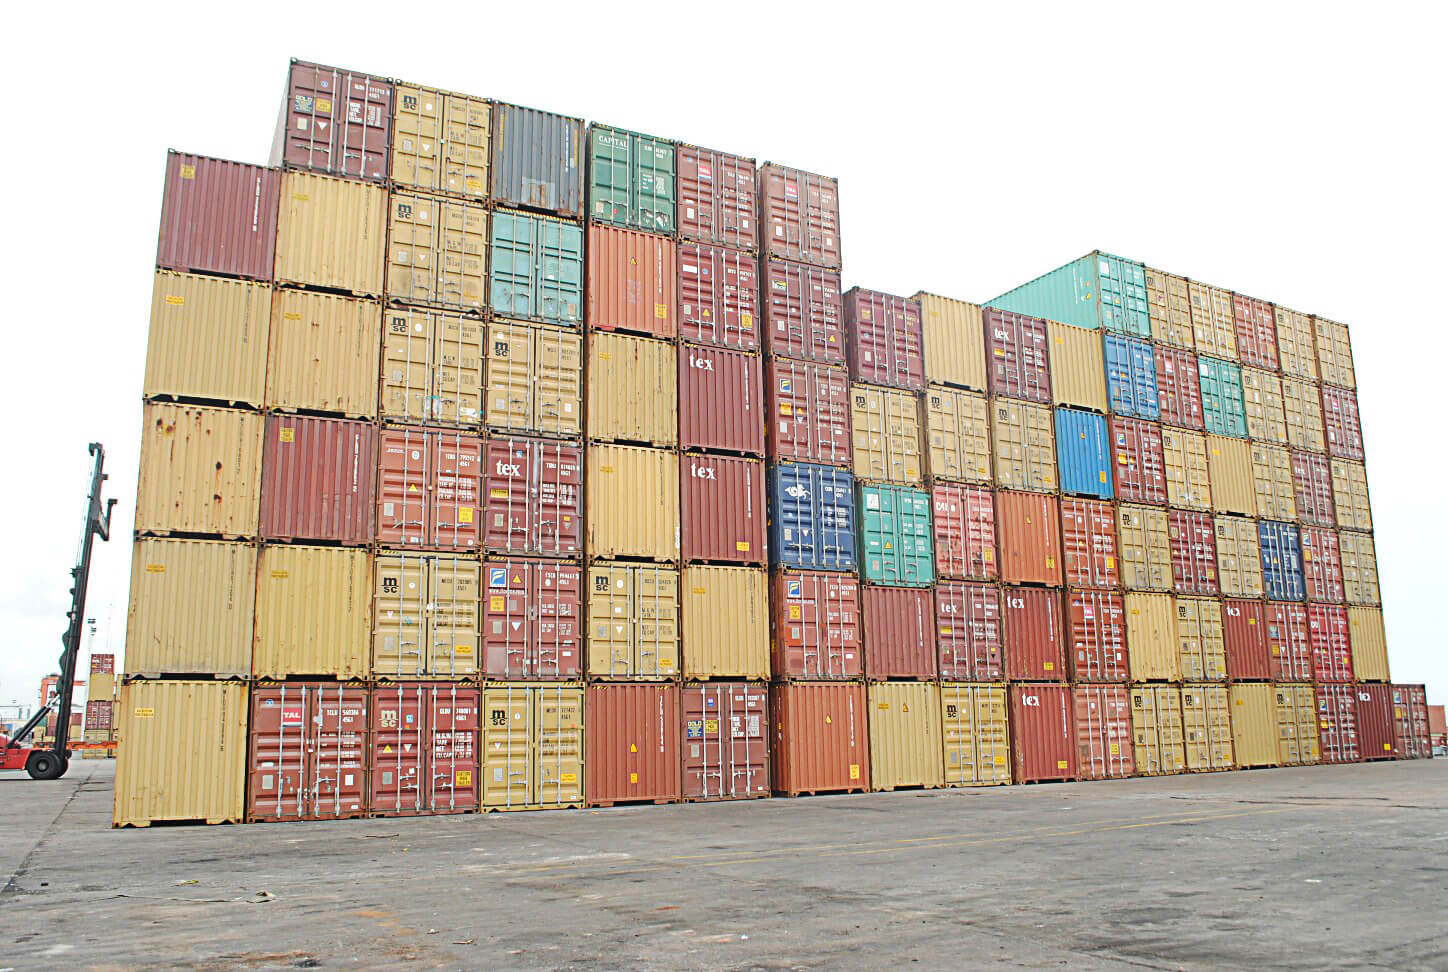 Stack-of-containers-Ports-Cargo